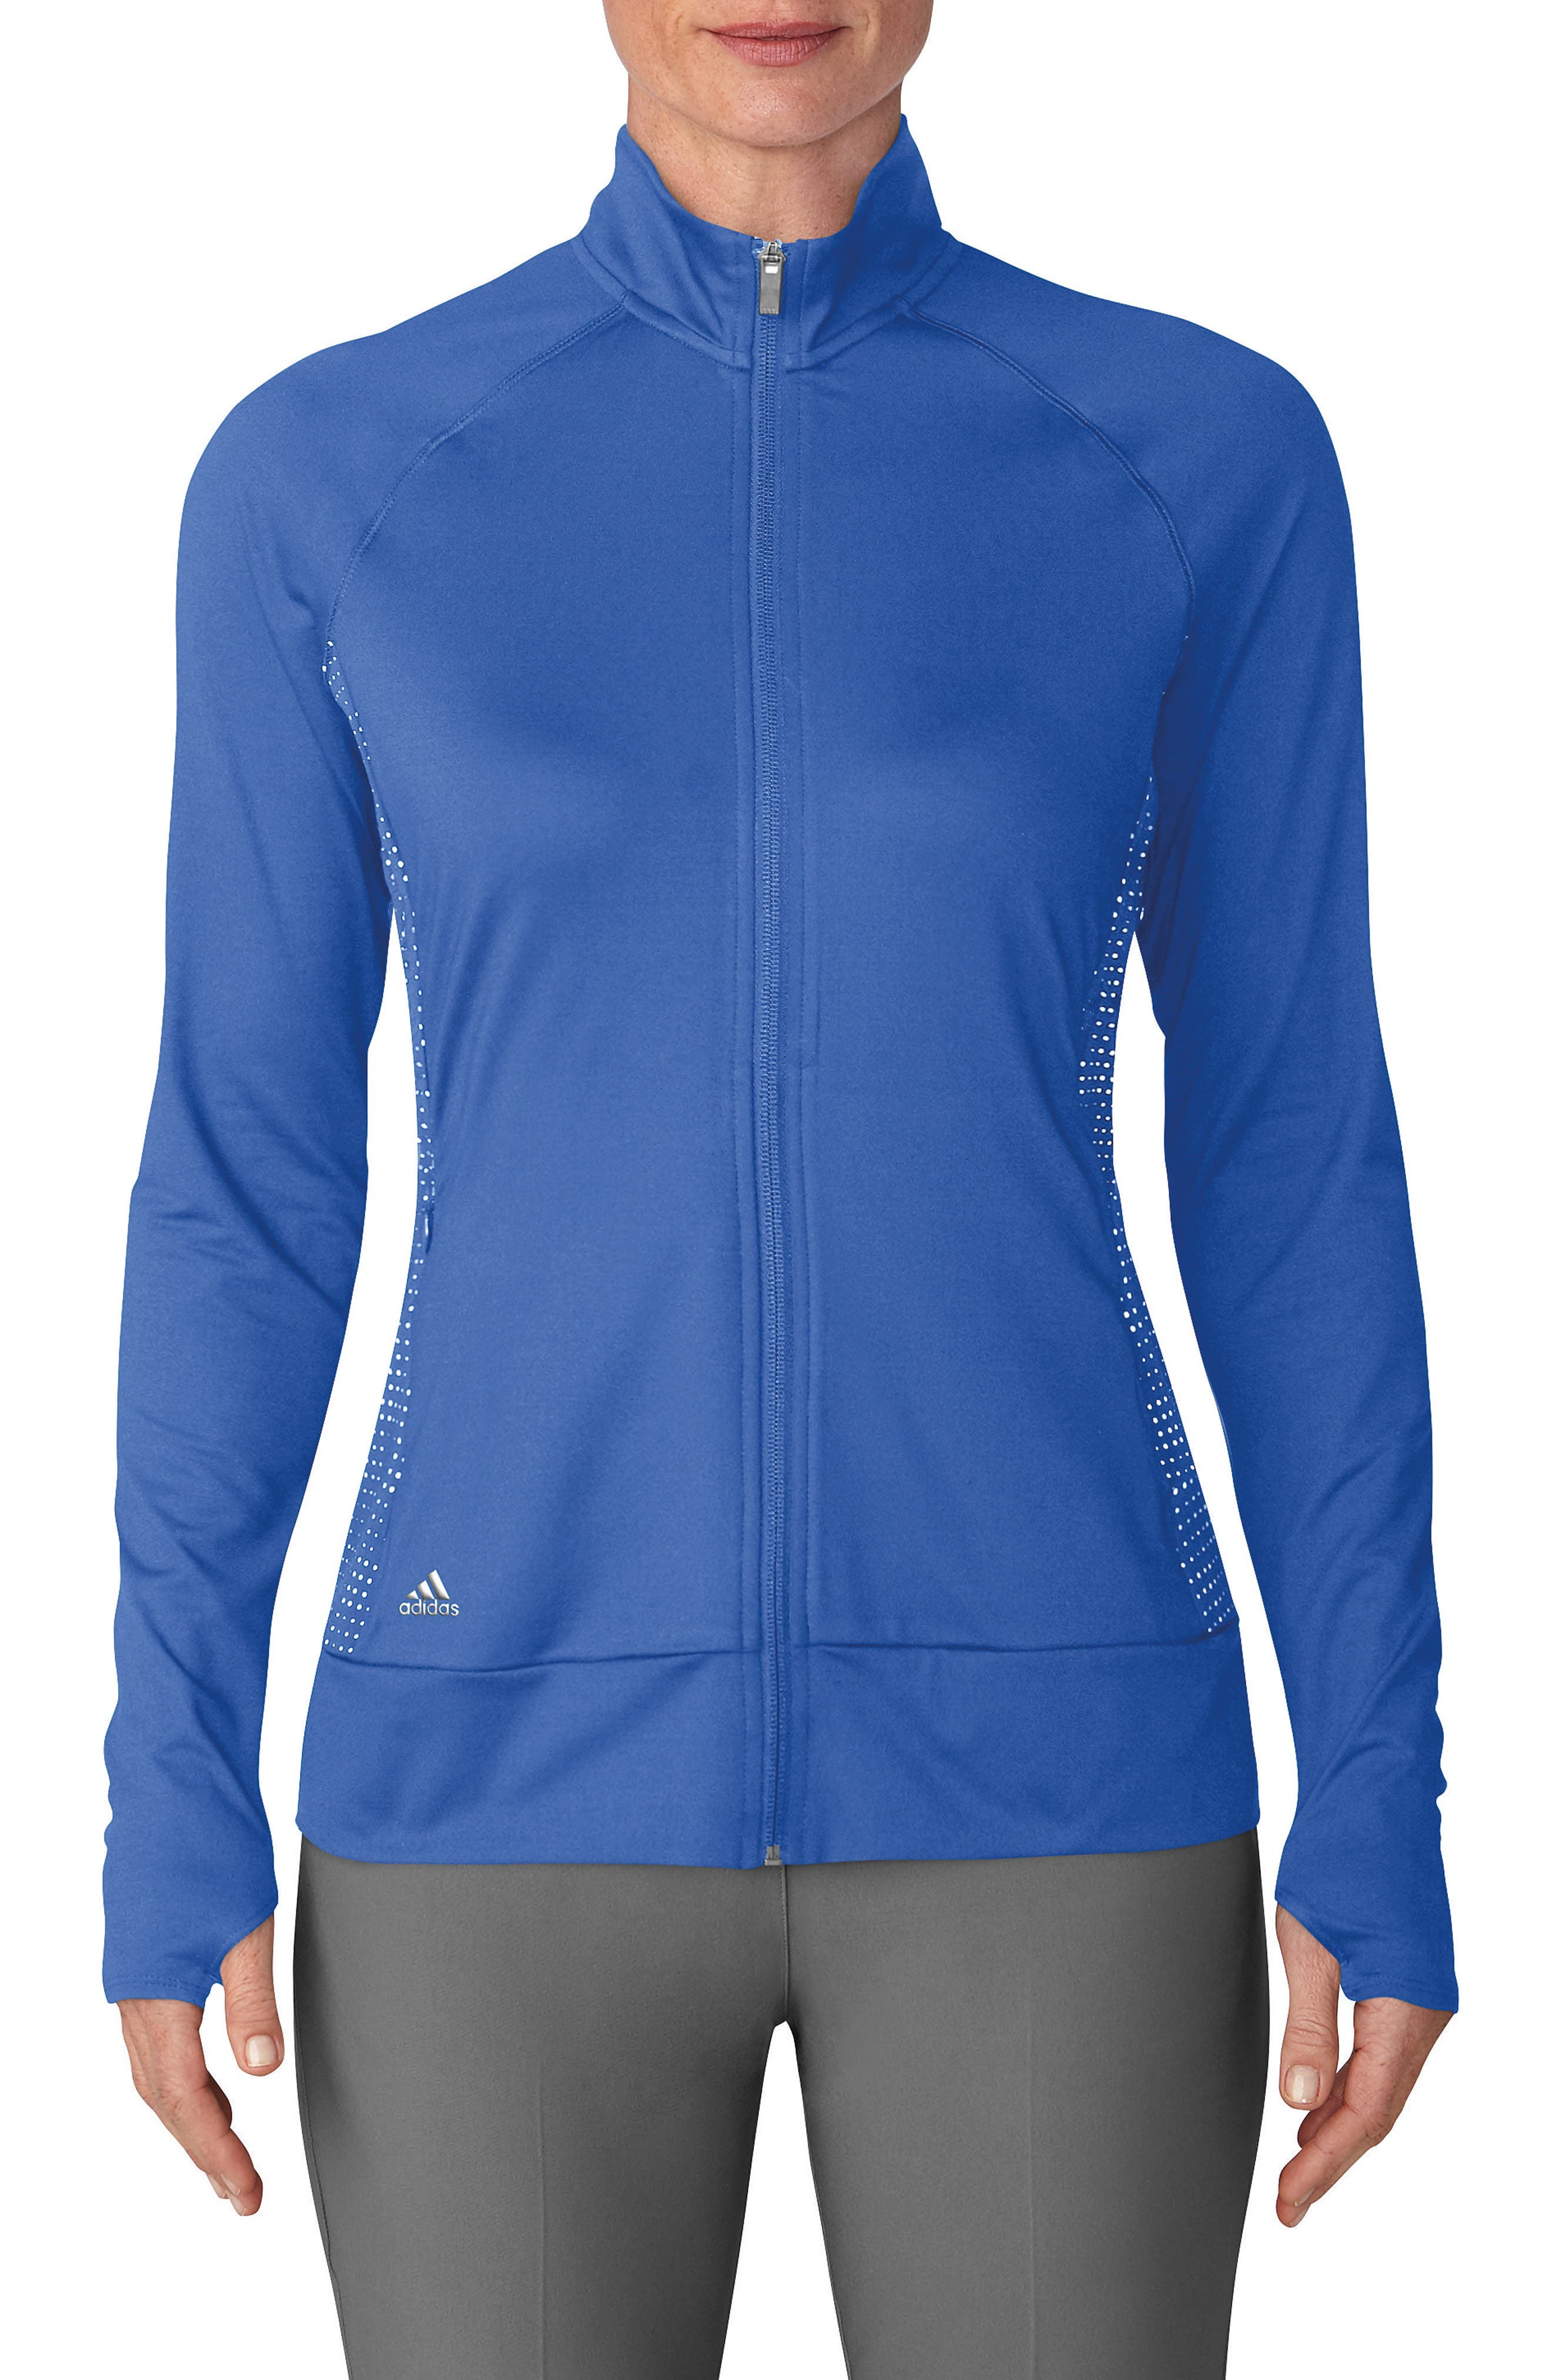 Rangewear Jacket,                         Main,                         color, 423